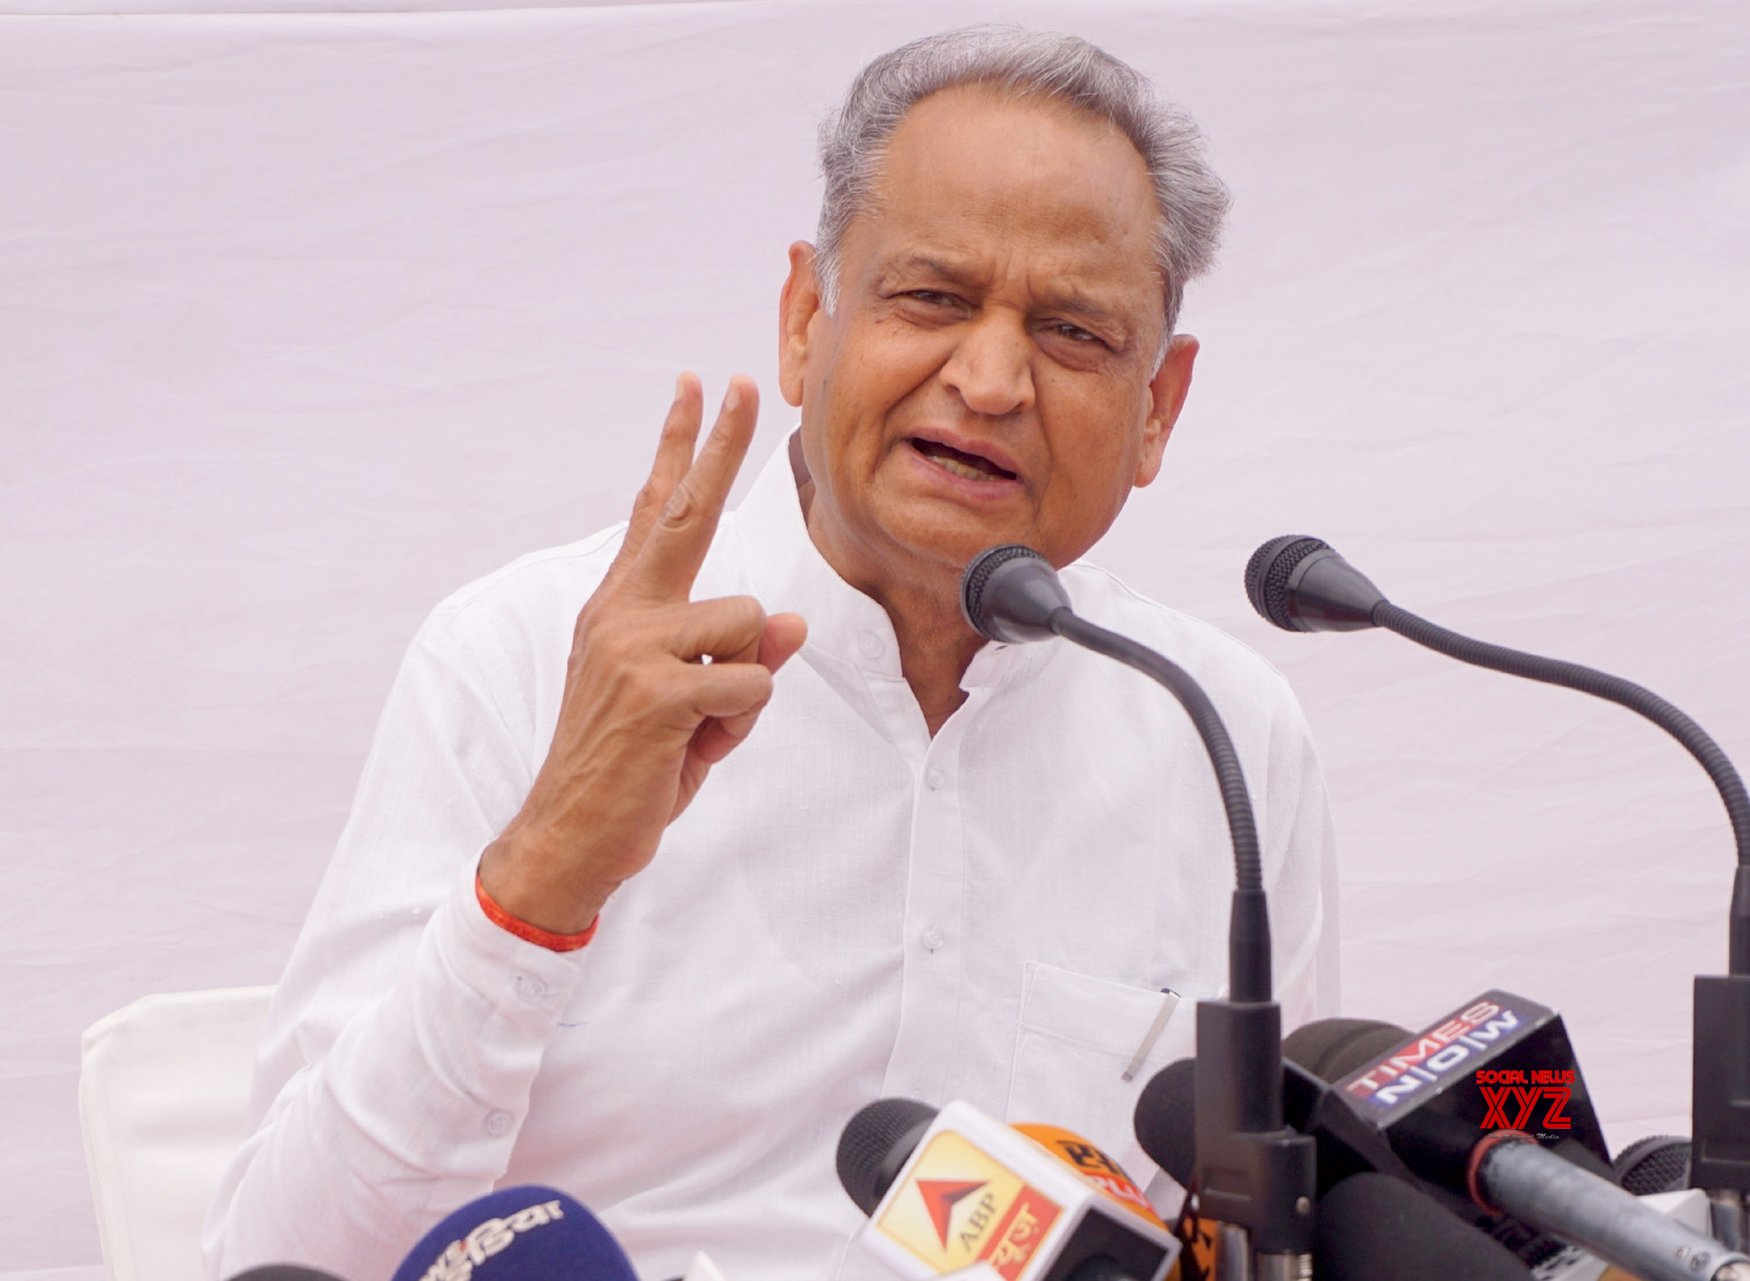 Jaipur: Ashok Gehlot's press conference #Gallery